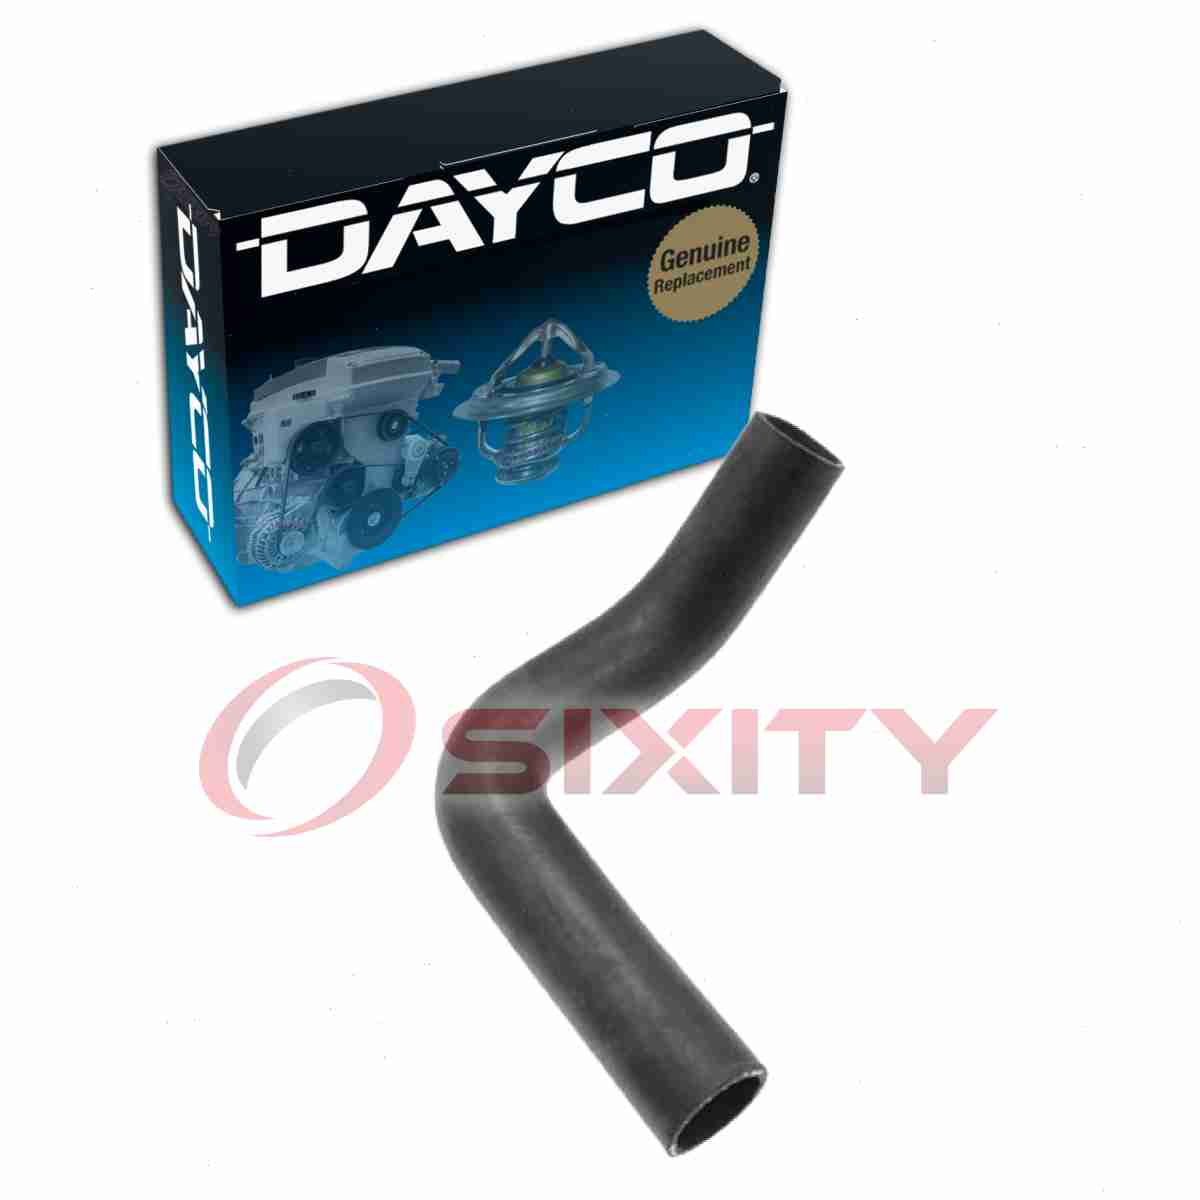 details about dayco lower radiator hose for 1962 buick skylark engine coolant heating vn [ 1200 x 1200 Pixel ]